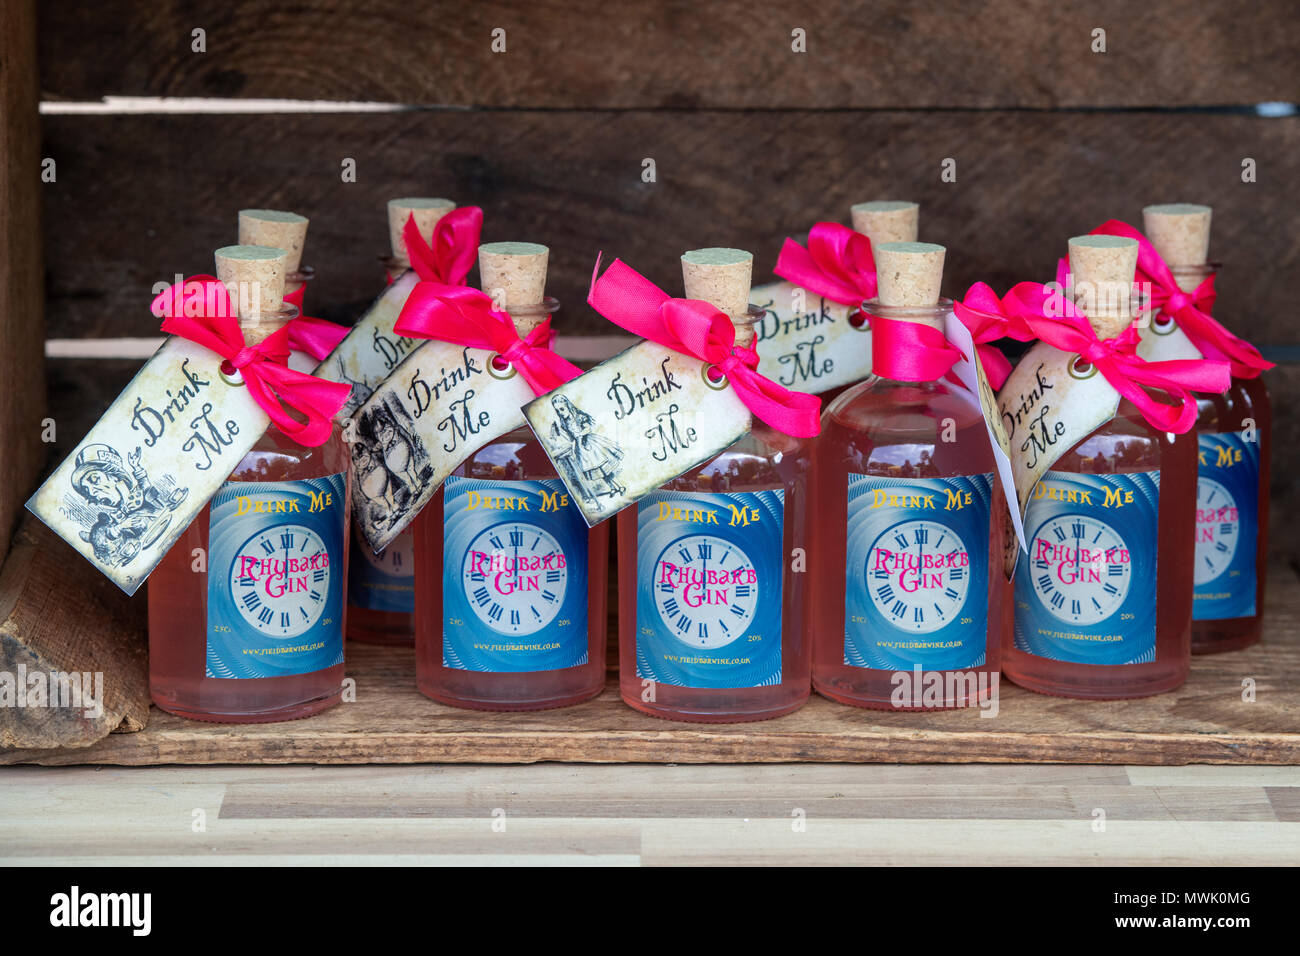 Speciality drink me rhubarb gin bottles at a food festival. Oxfordshire, England - Stock Image